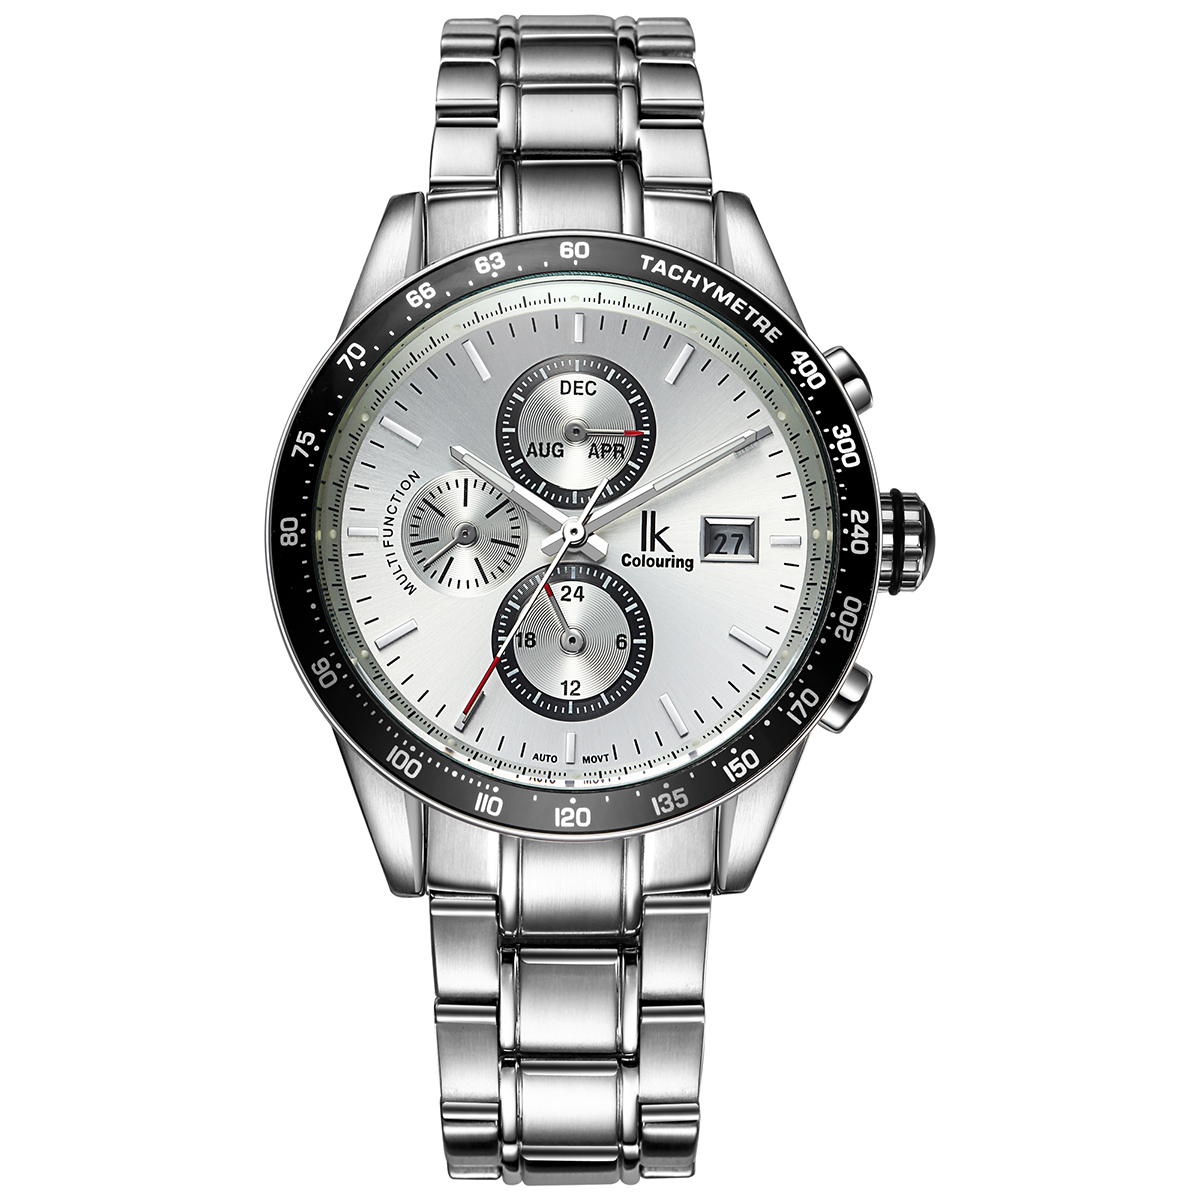 Phenomenal Automatic Mens Watches Page 5 G Shock Hairstyles For Women Draintrainus